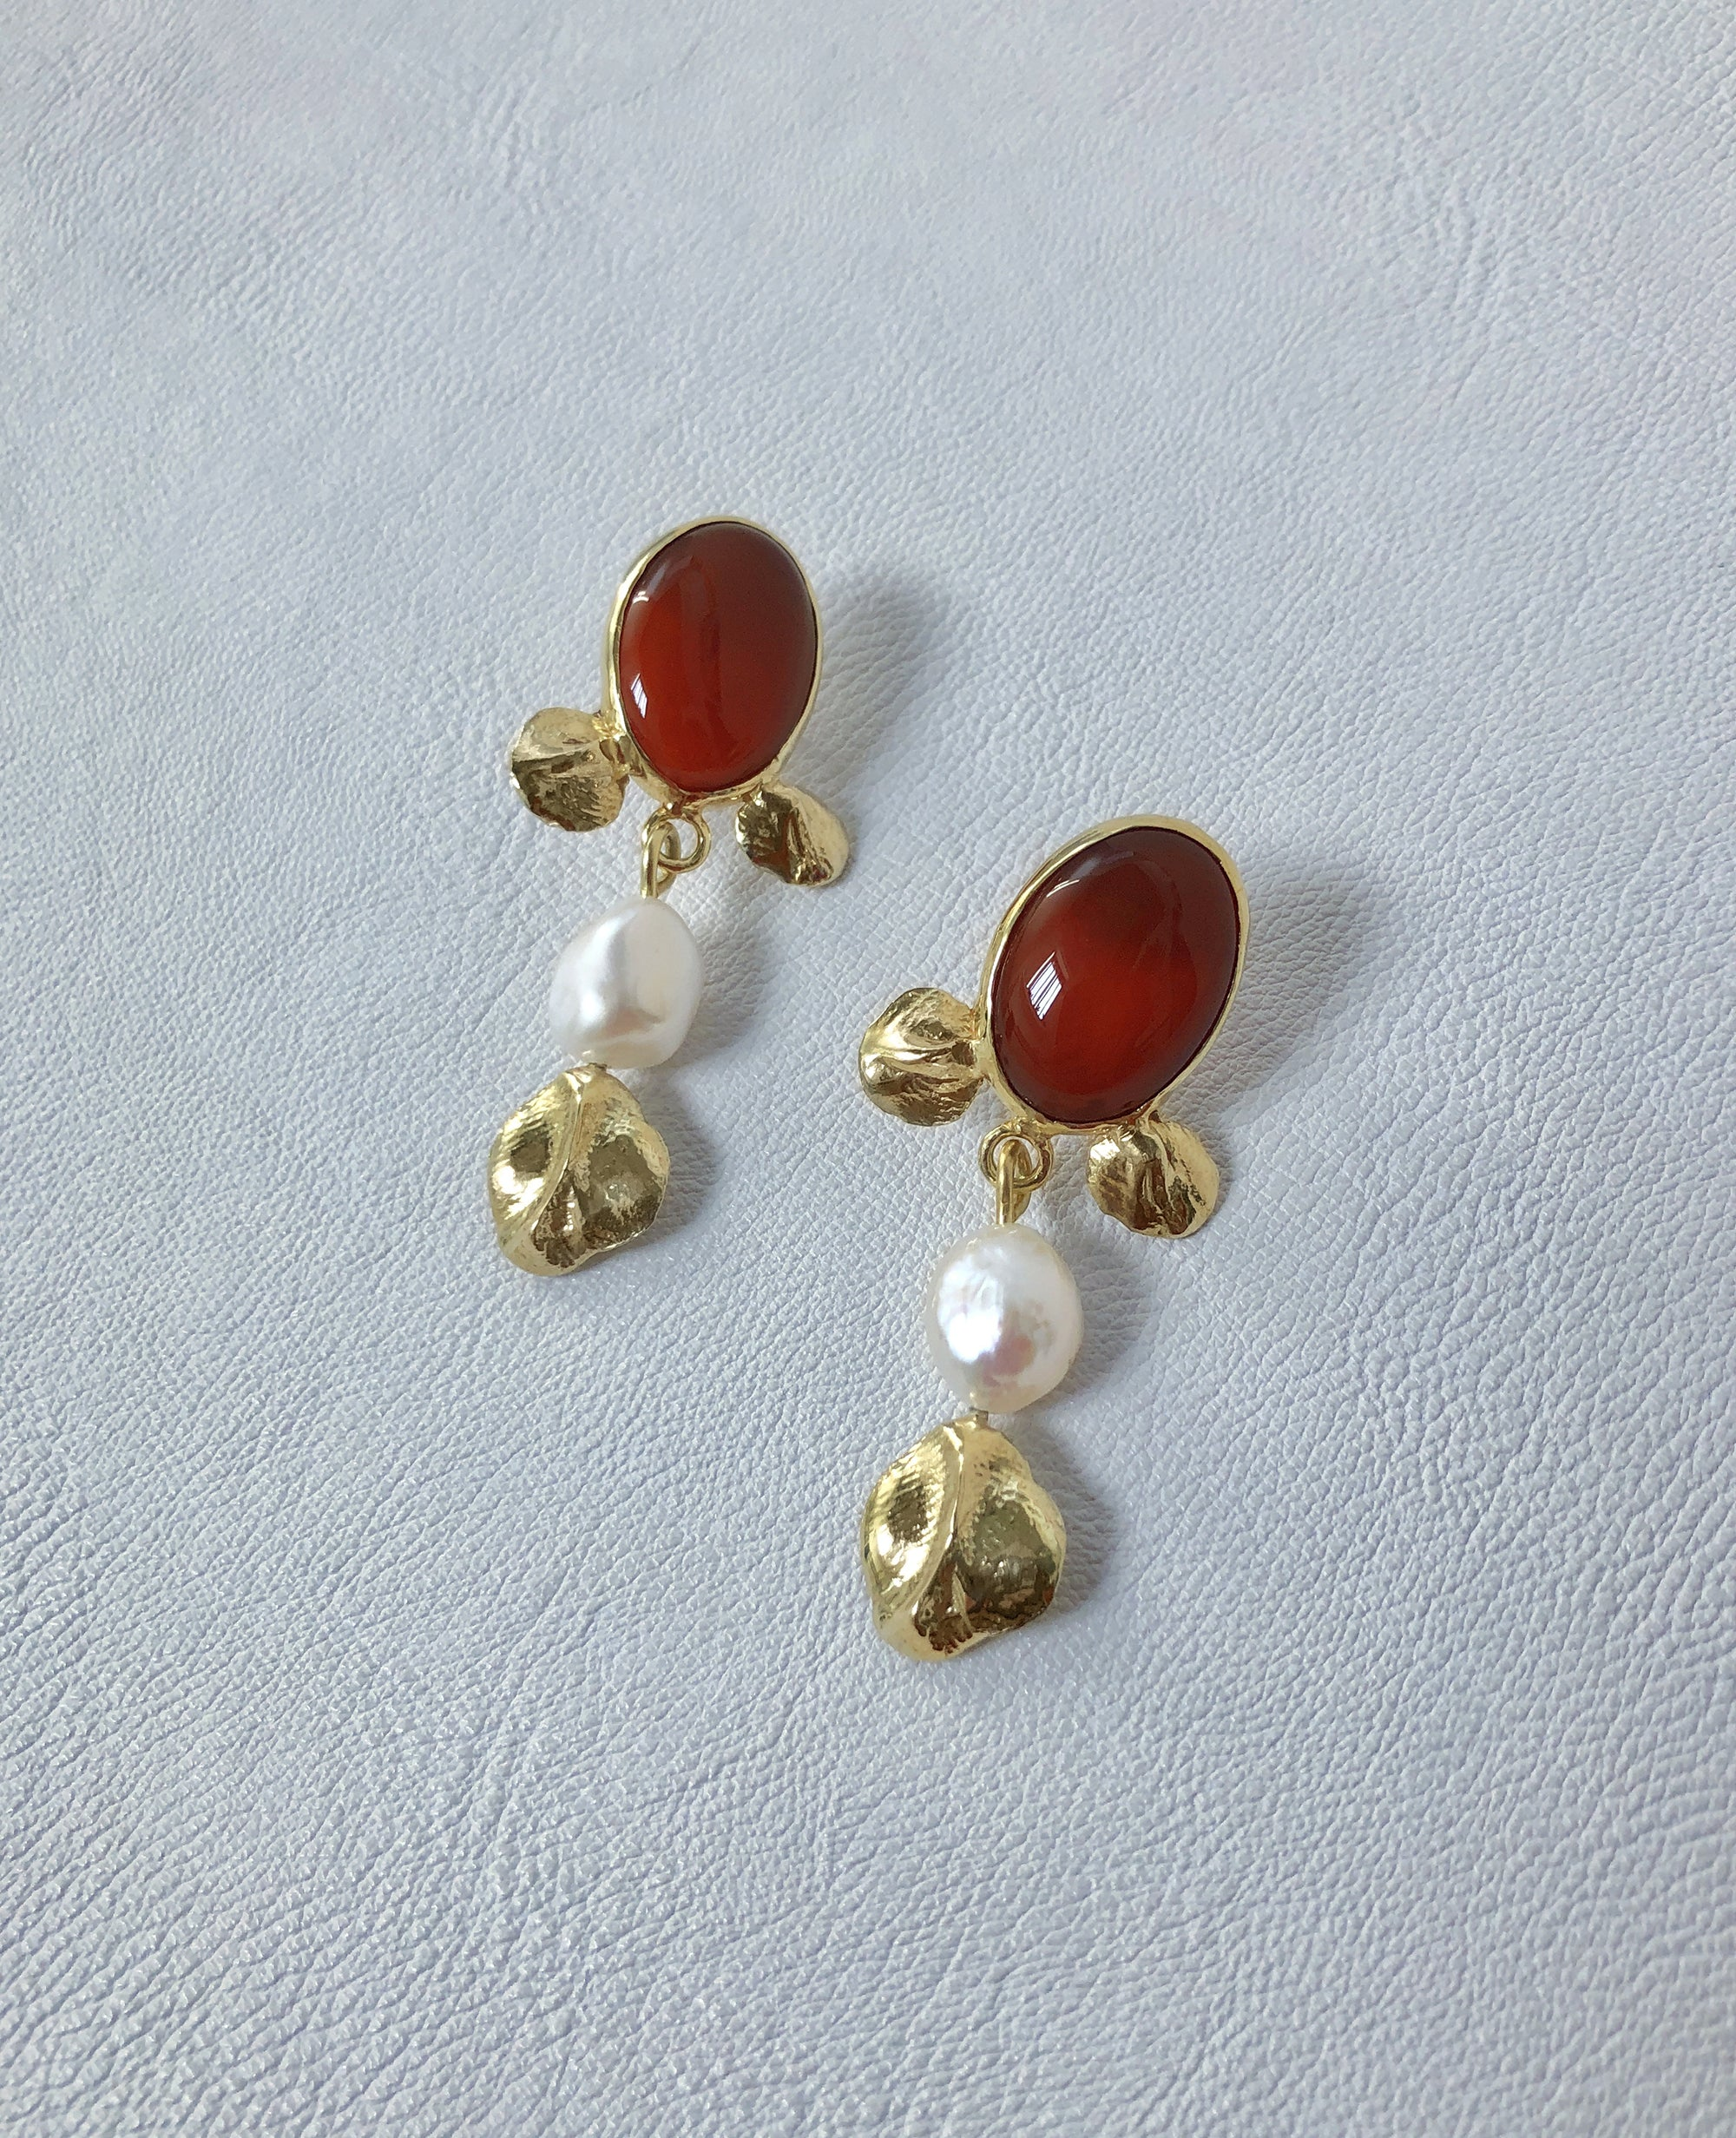 MADELEINE // carnelian and baroque pearls - ORA-C jewelry - handmade jewelry by Montreal based independent designer Caroline Pham